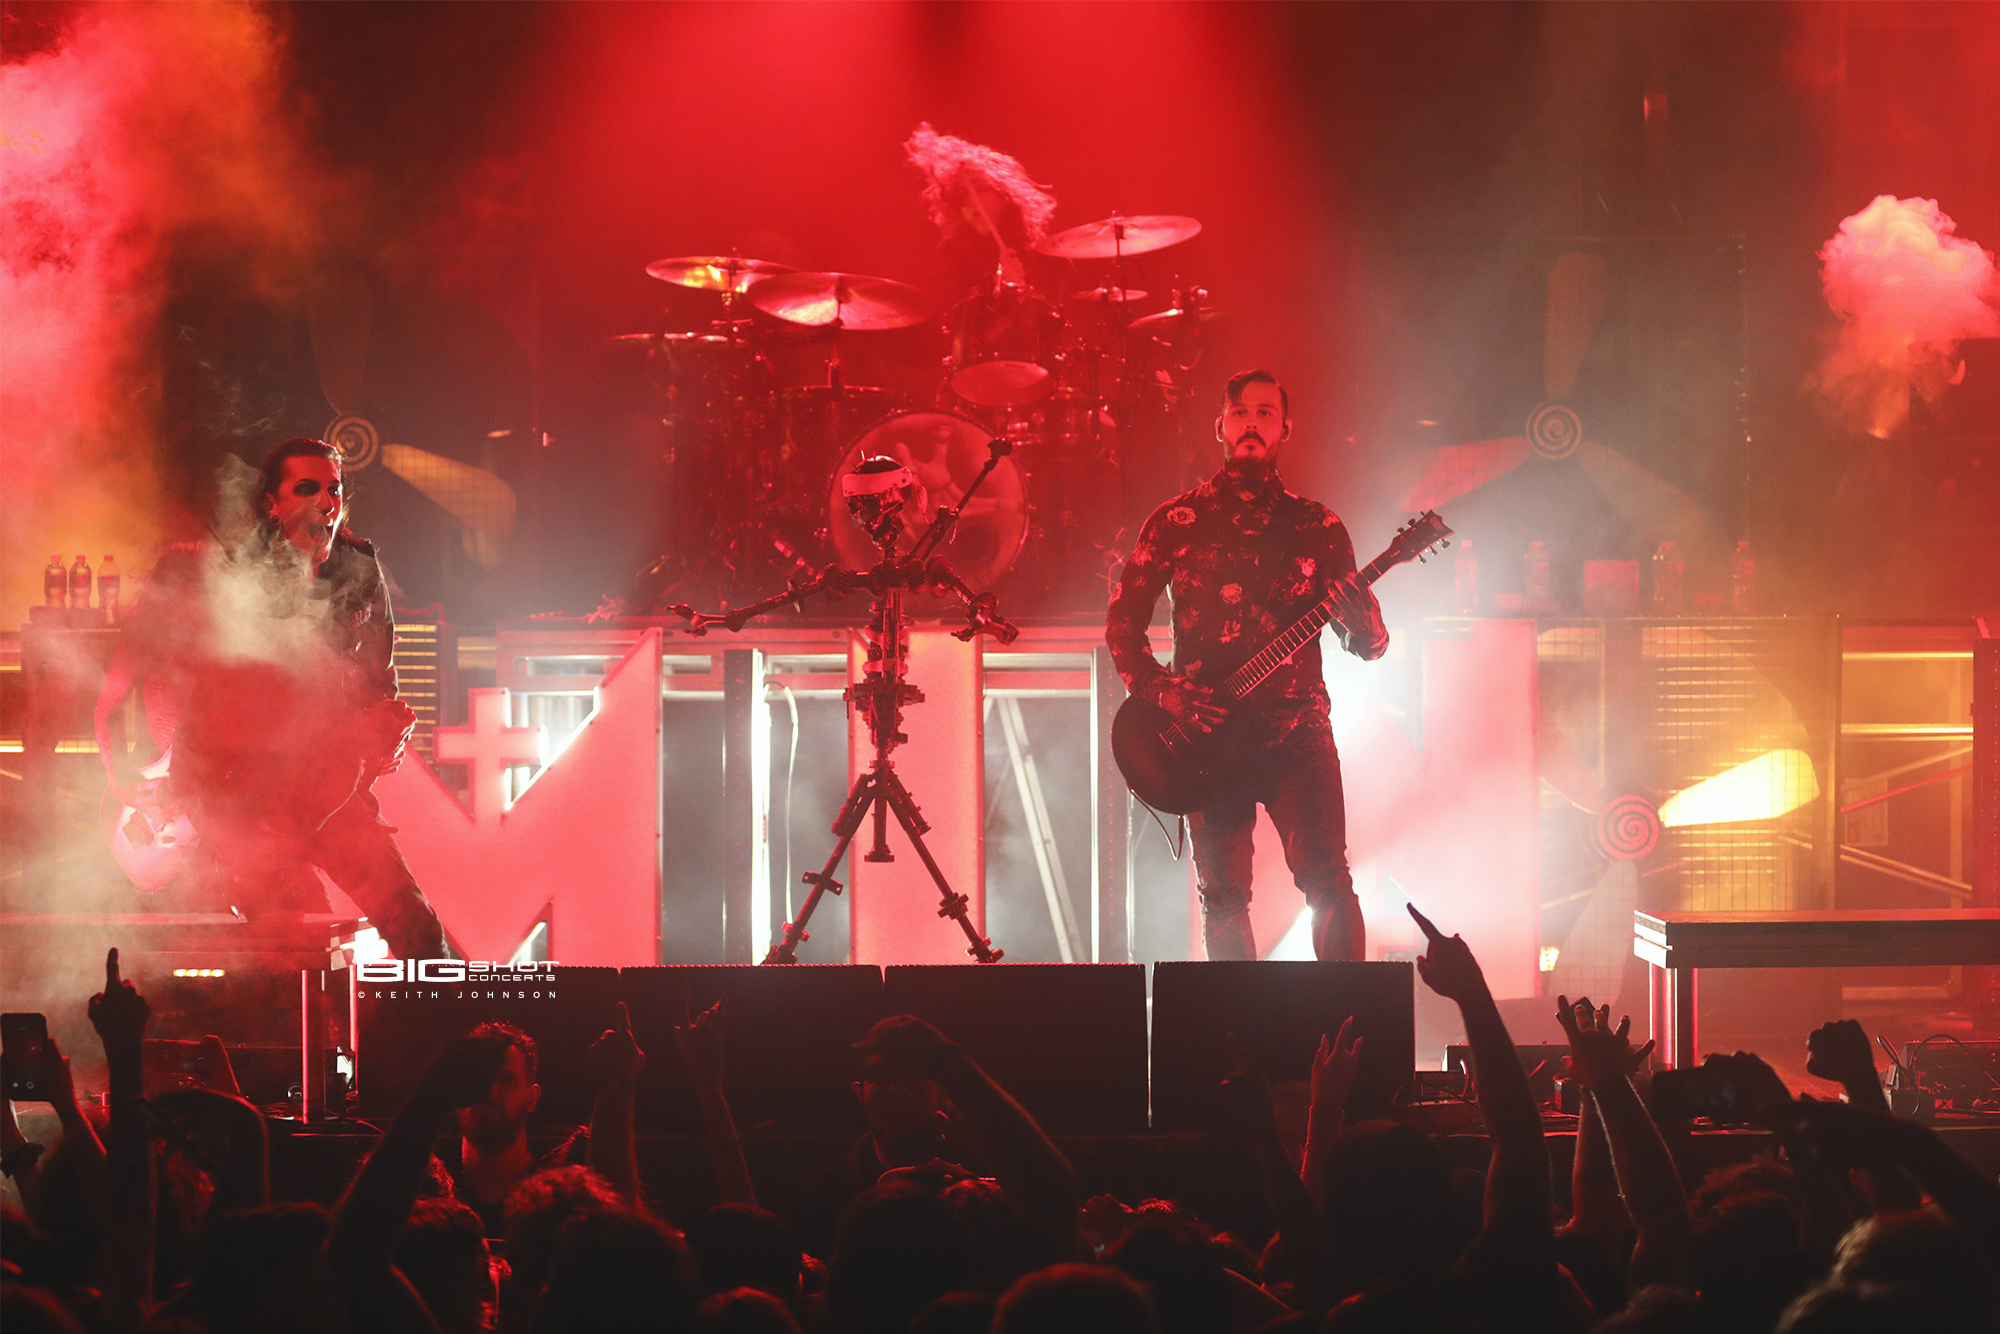 Motionless in White at Revolution Live in Ft. Lauderdale, Florida